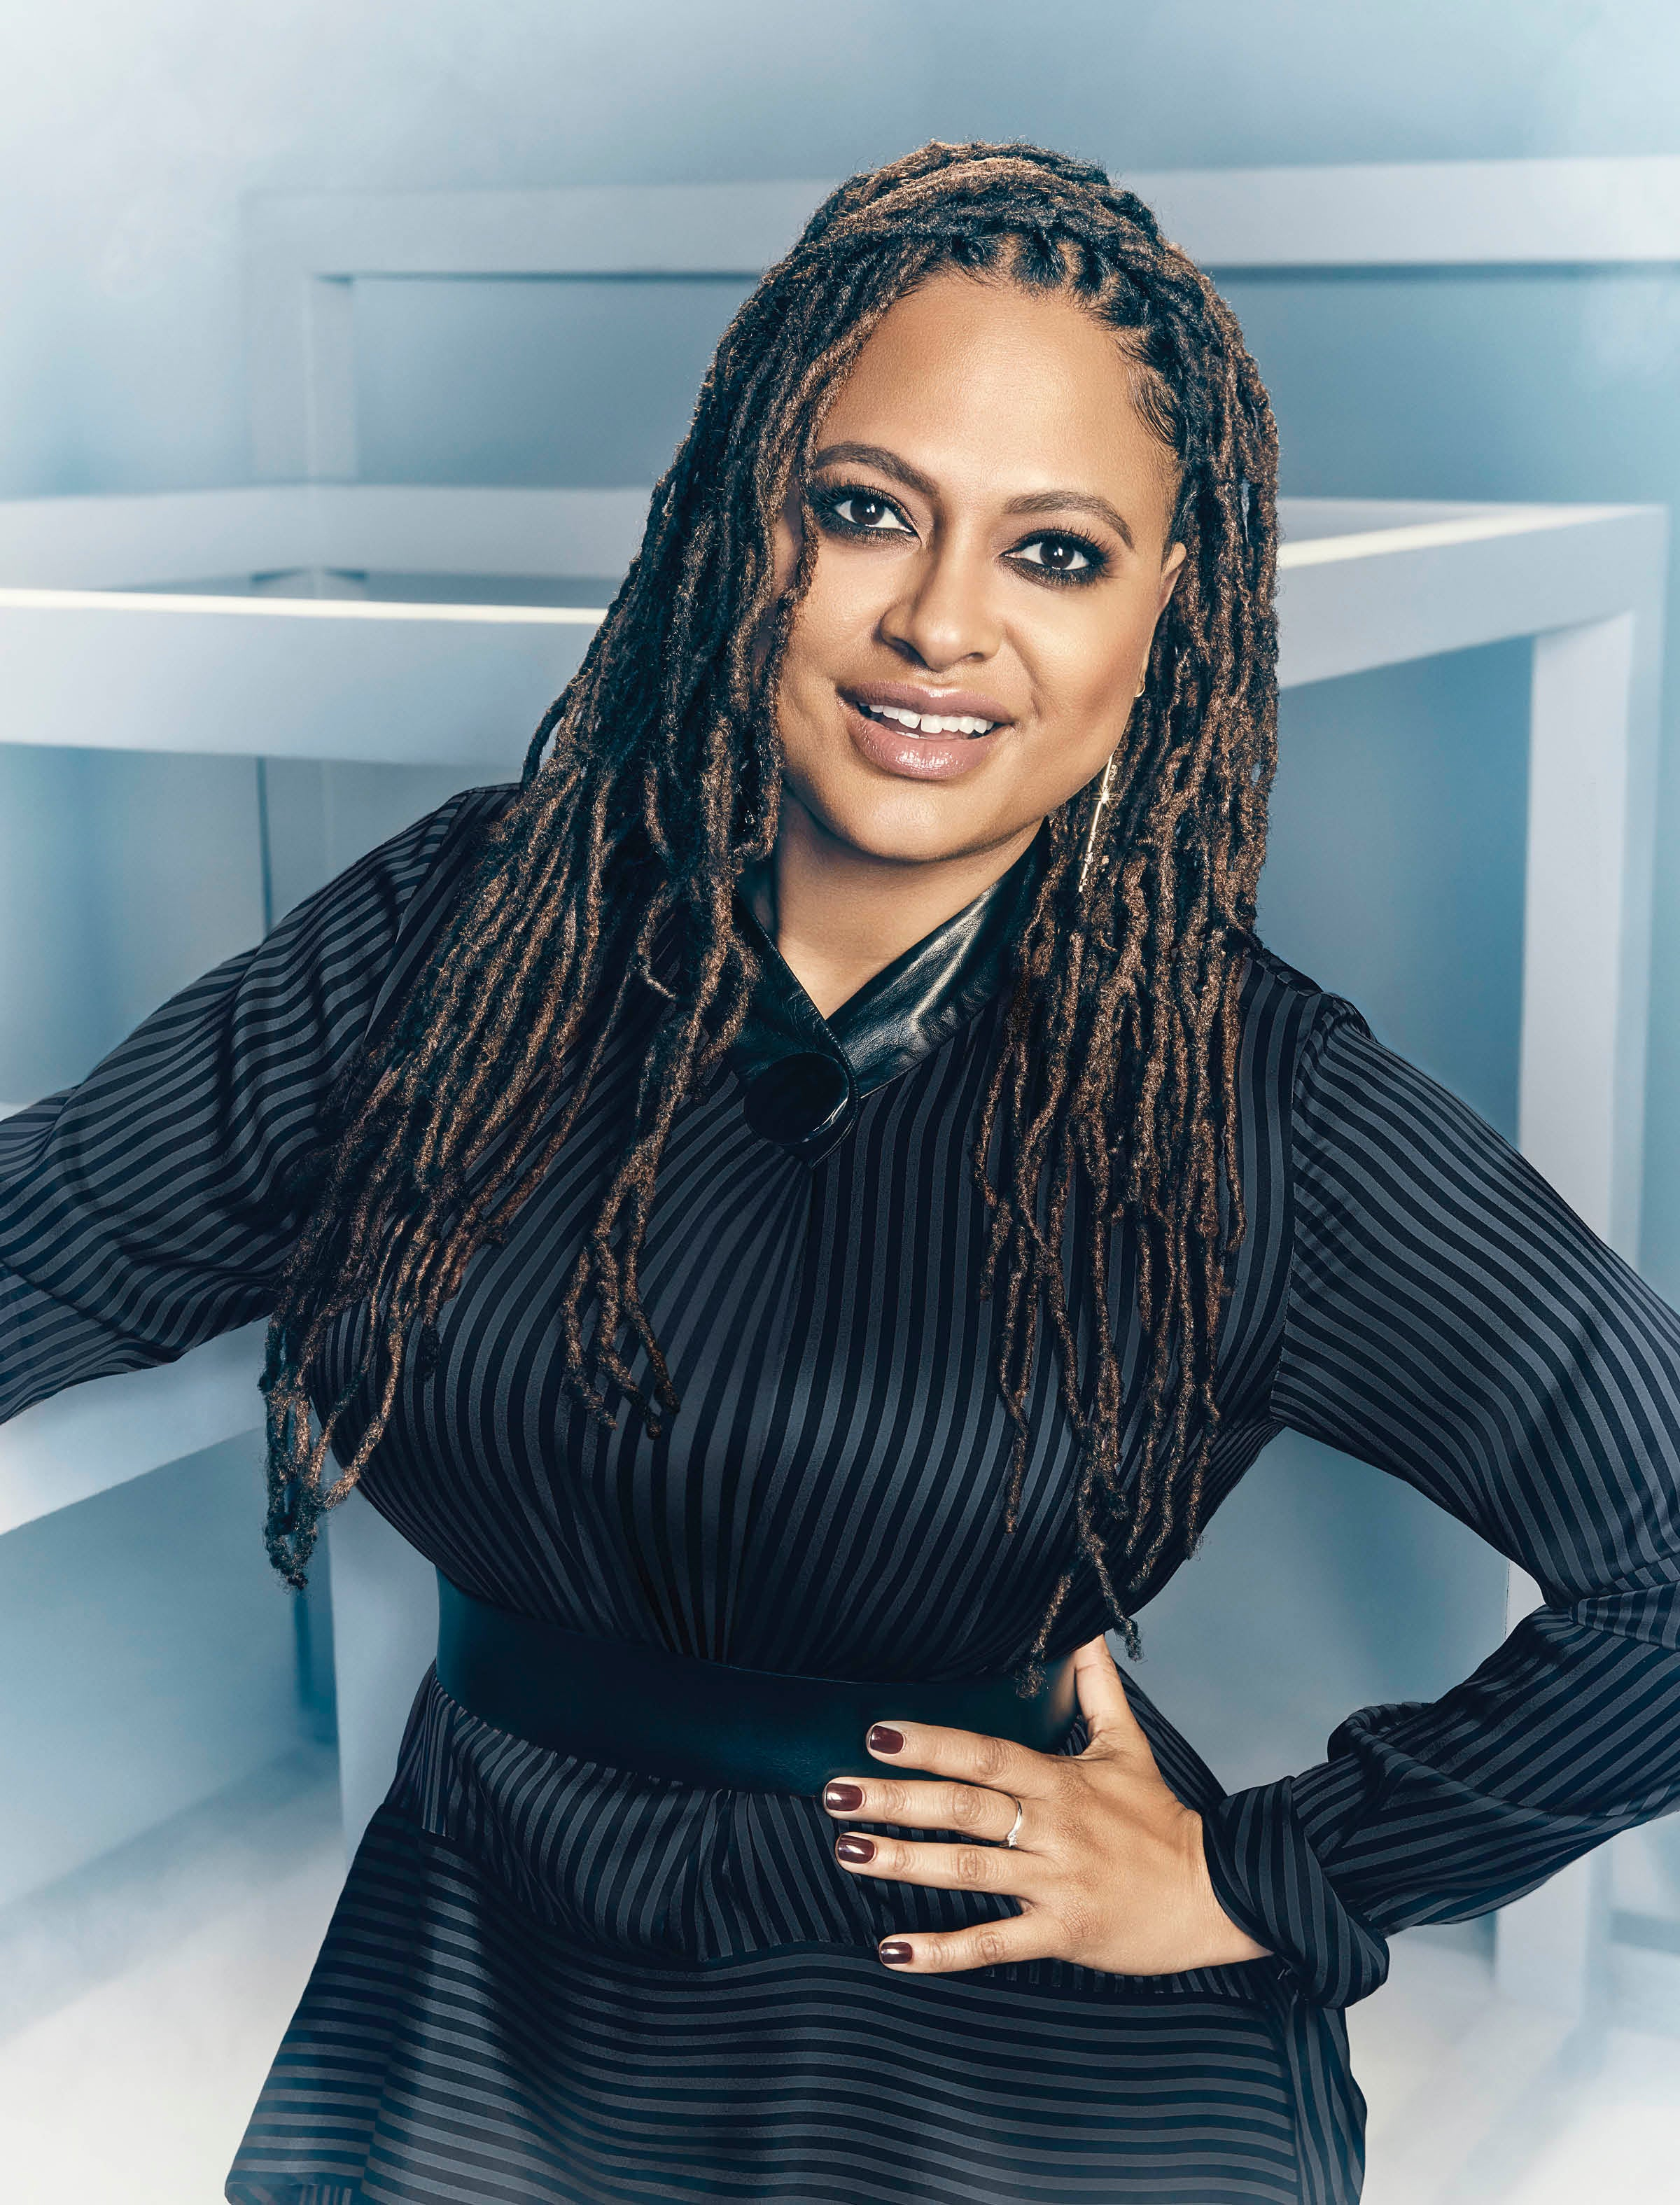 A New Racial Drama Produced By Ava DuVernay Could Be Headed To CBS